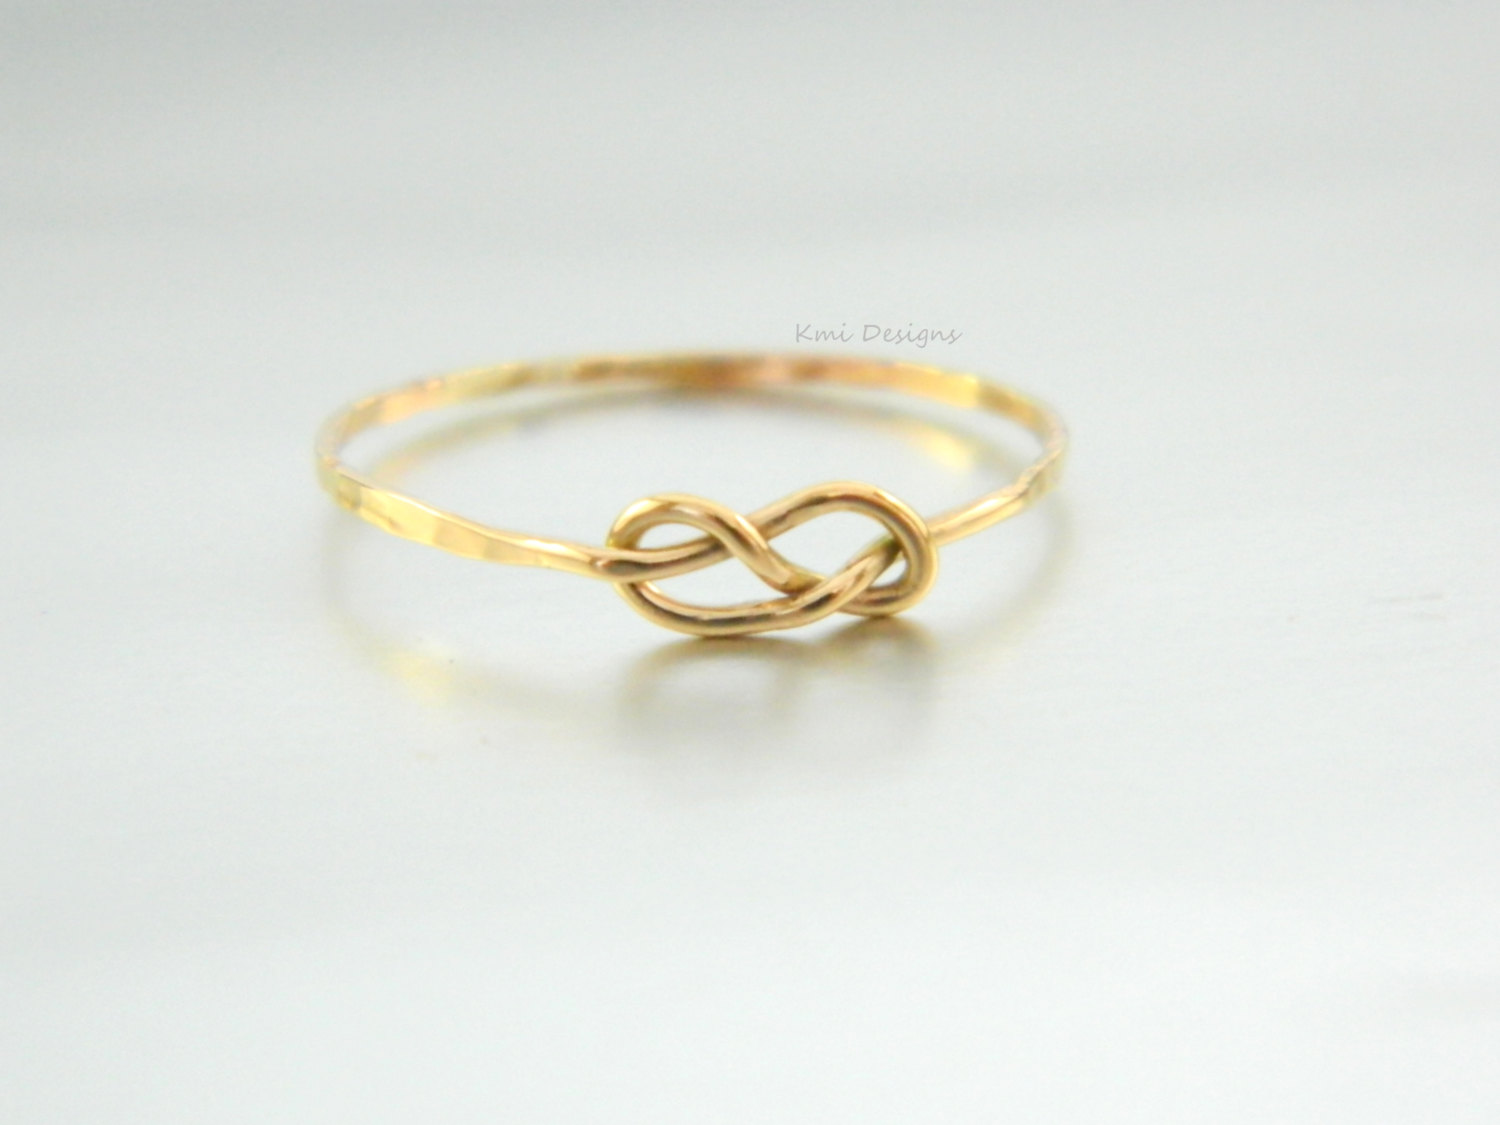 VALENTINEu0027S DAY GIFT Gold Infinity Love Ring, Engagement Ring, 14K Solid  Gold Ring, Knot Ring, Friendship Ring, ...